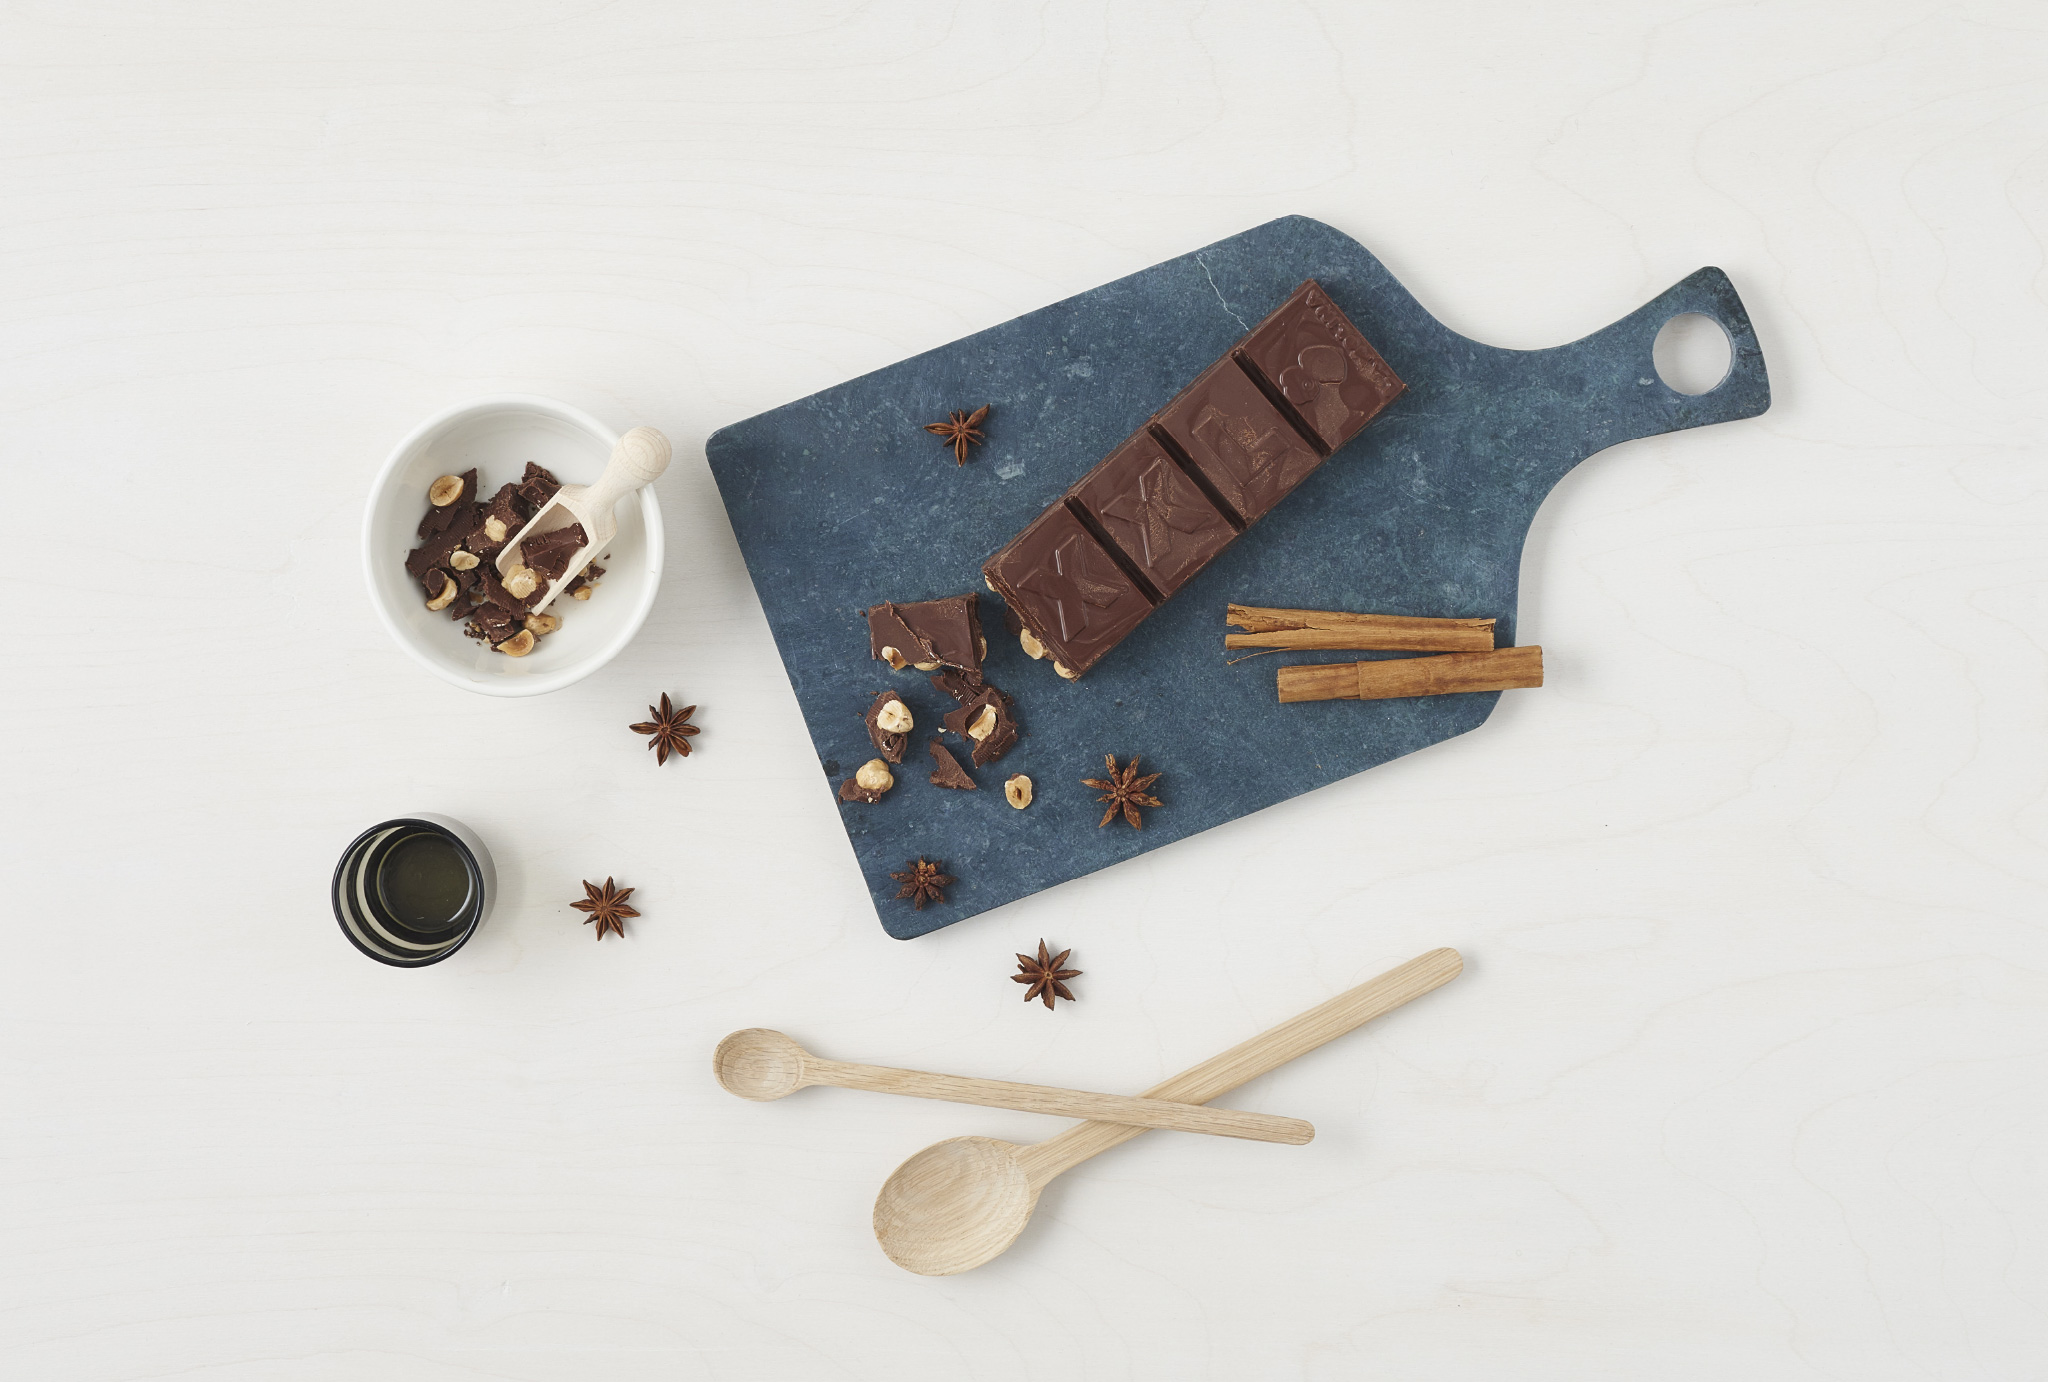 grey cutting board with chocolate and cinnamon on it, two spoons and a cup on a table